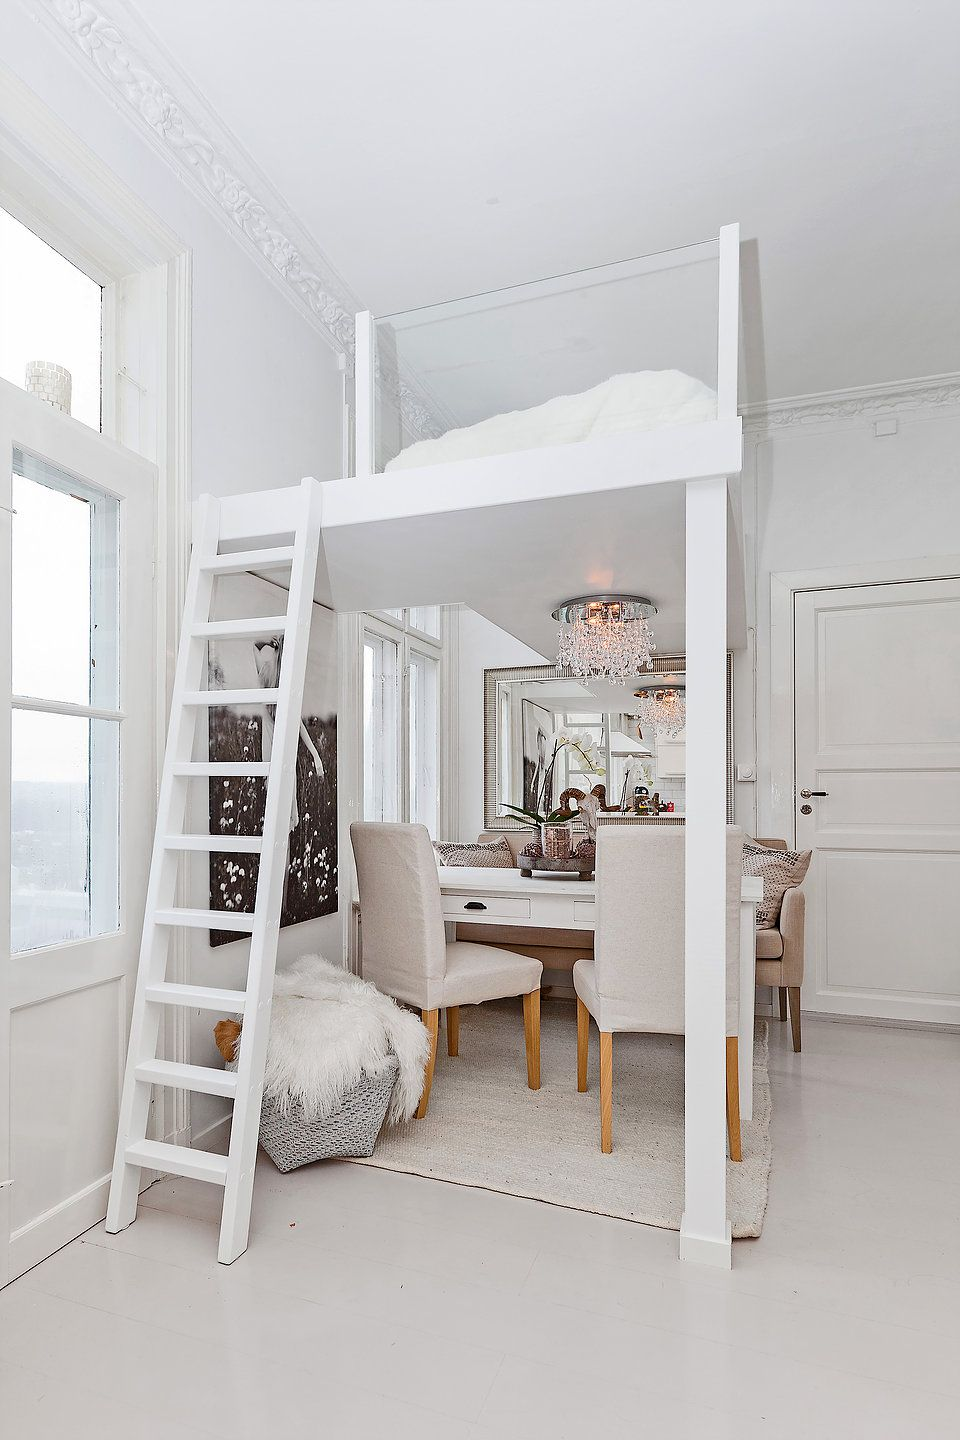 Loft Bed Ideas with Glass Railings